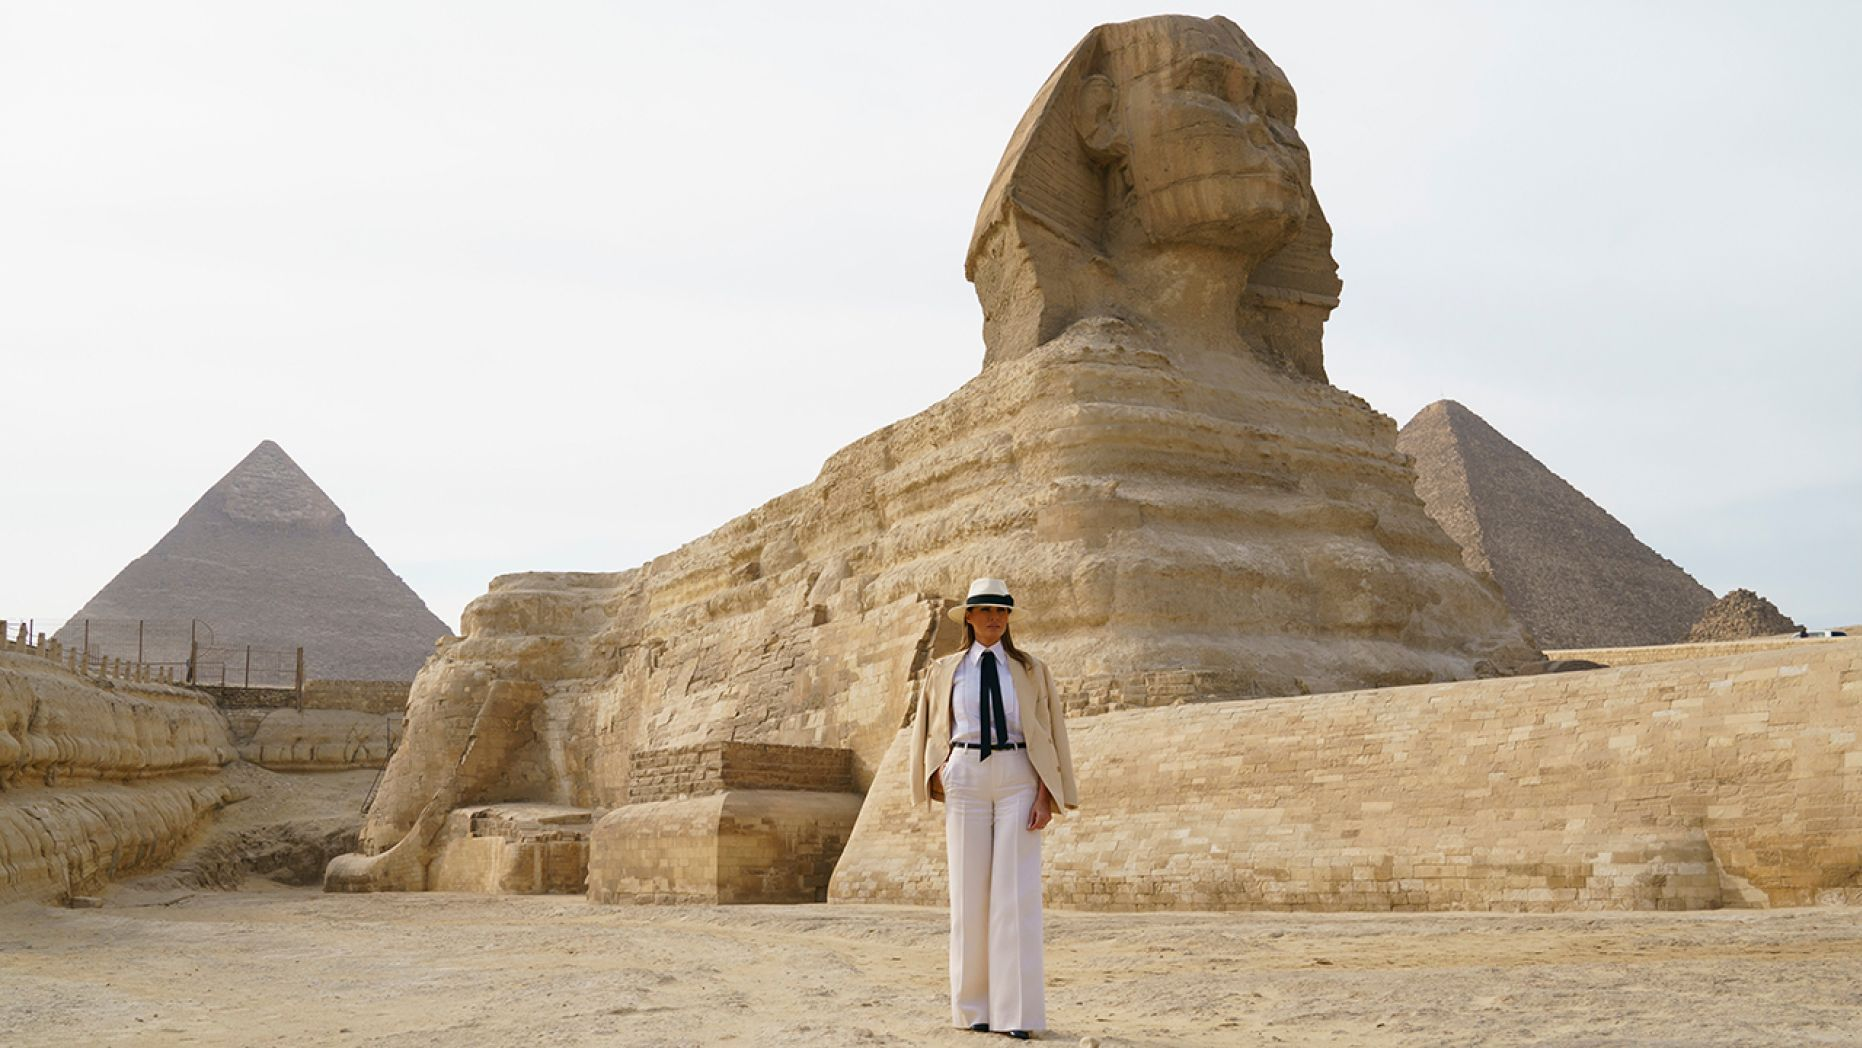 Day 6 First lady Melania Trump visits the ancient statue of Sphinx, with the body of a lion and a human head, at the historic site of Giza Pyramids i…